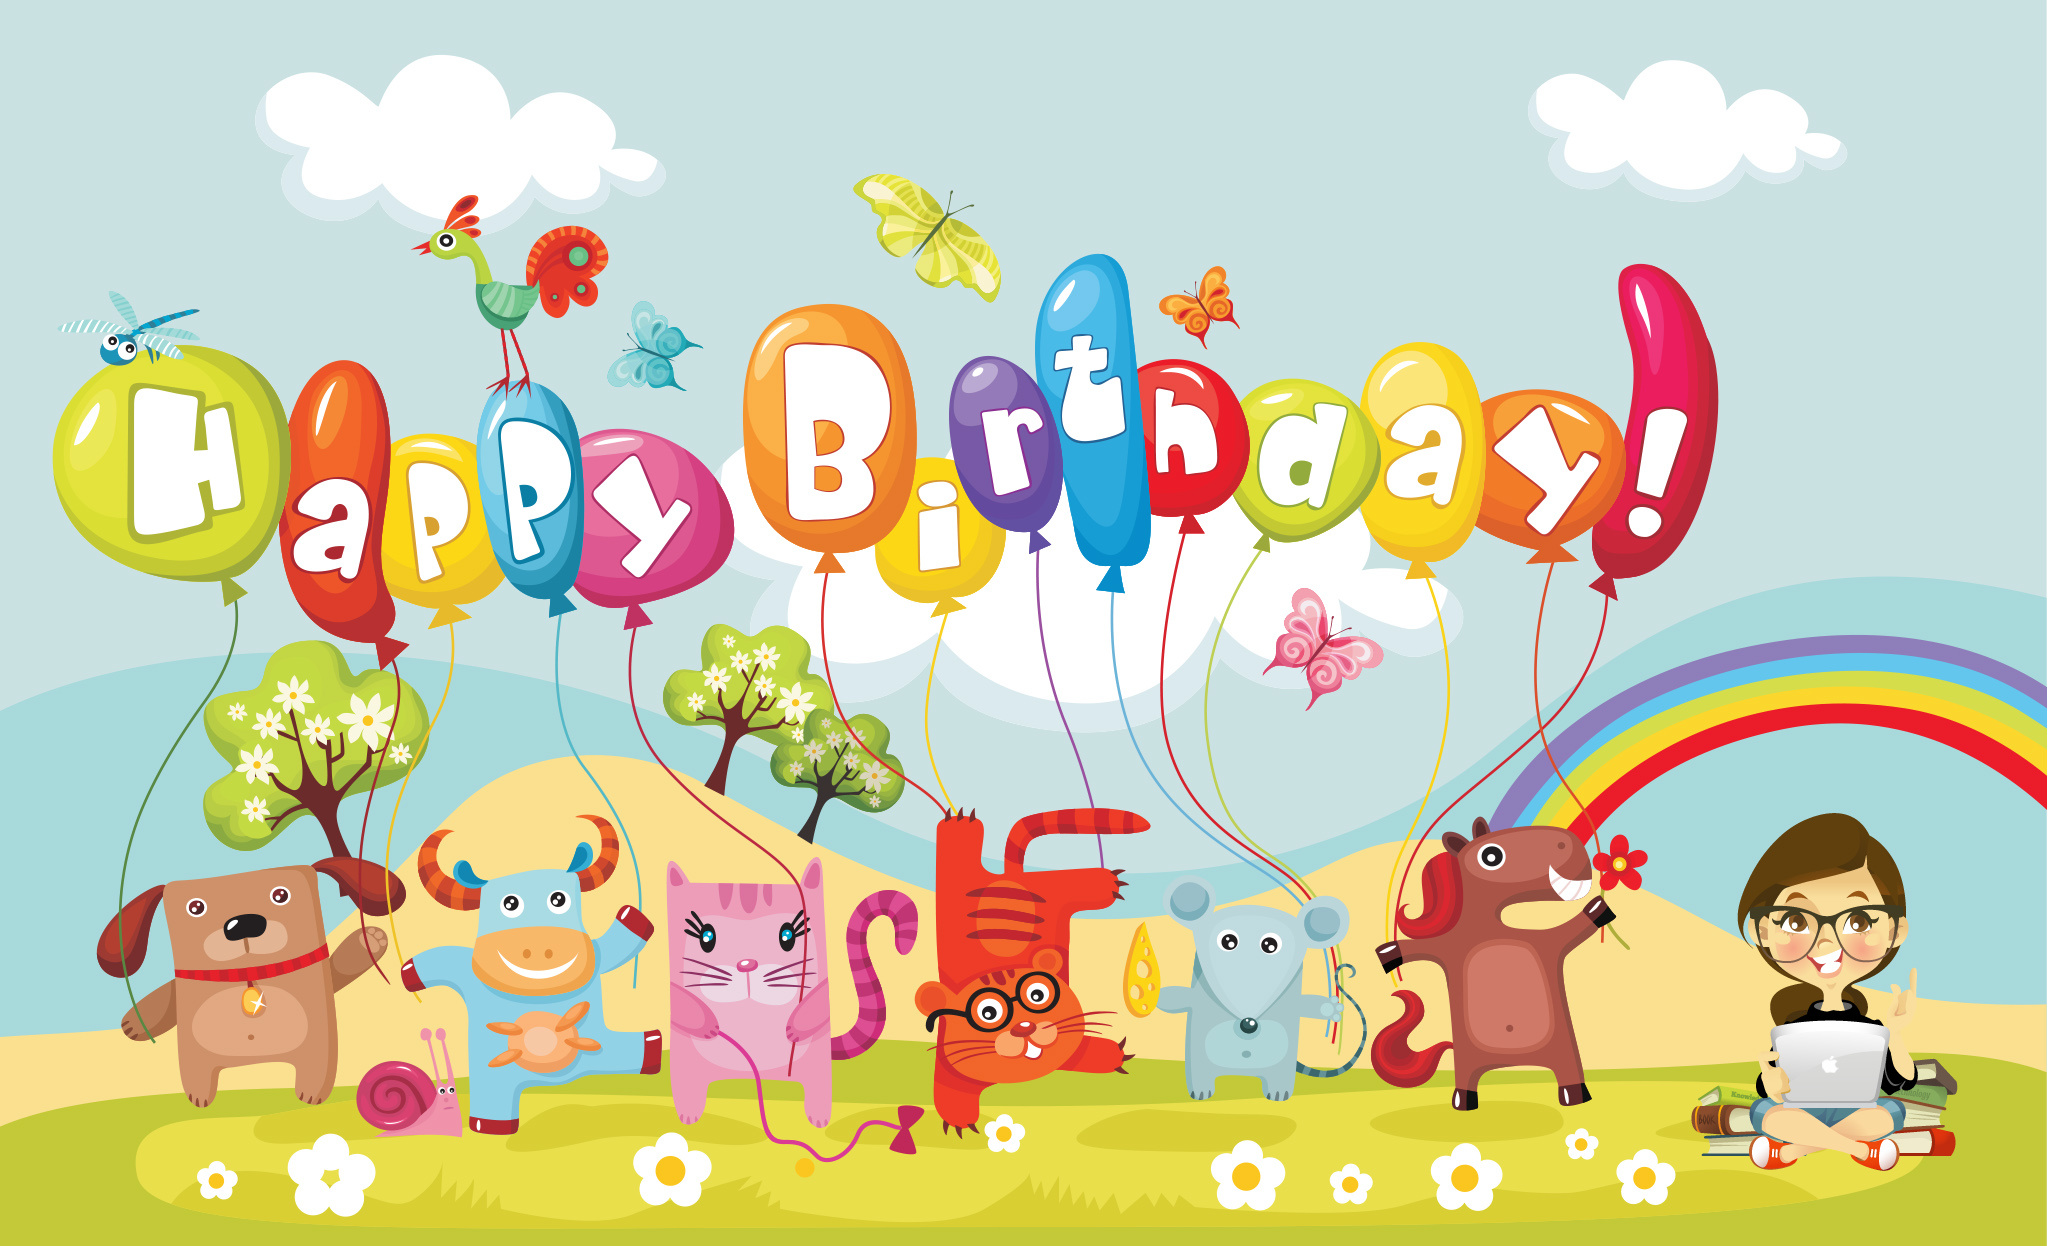 birthday wishes for friend images free download ; Happy-Birthday-Wishes-Free-Download-Wallpaper